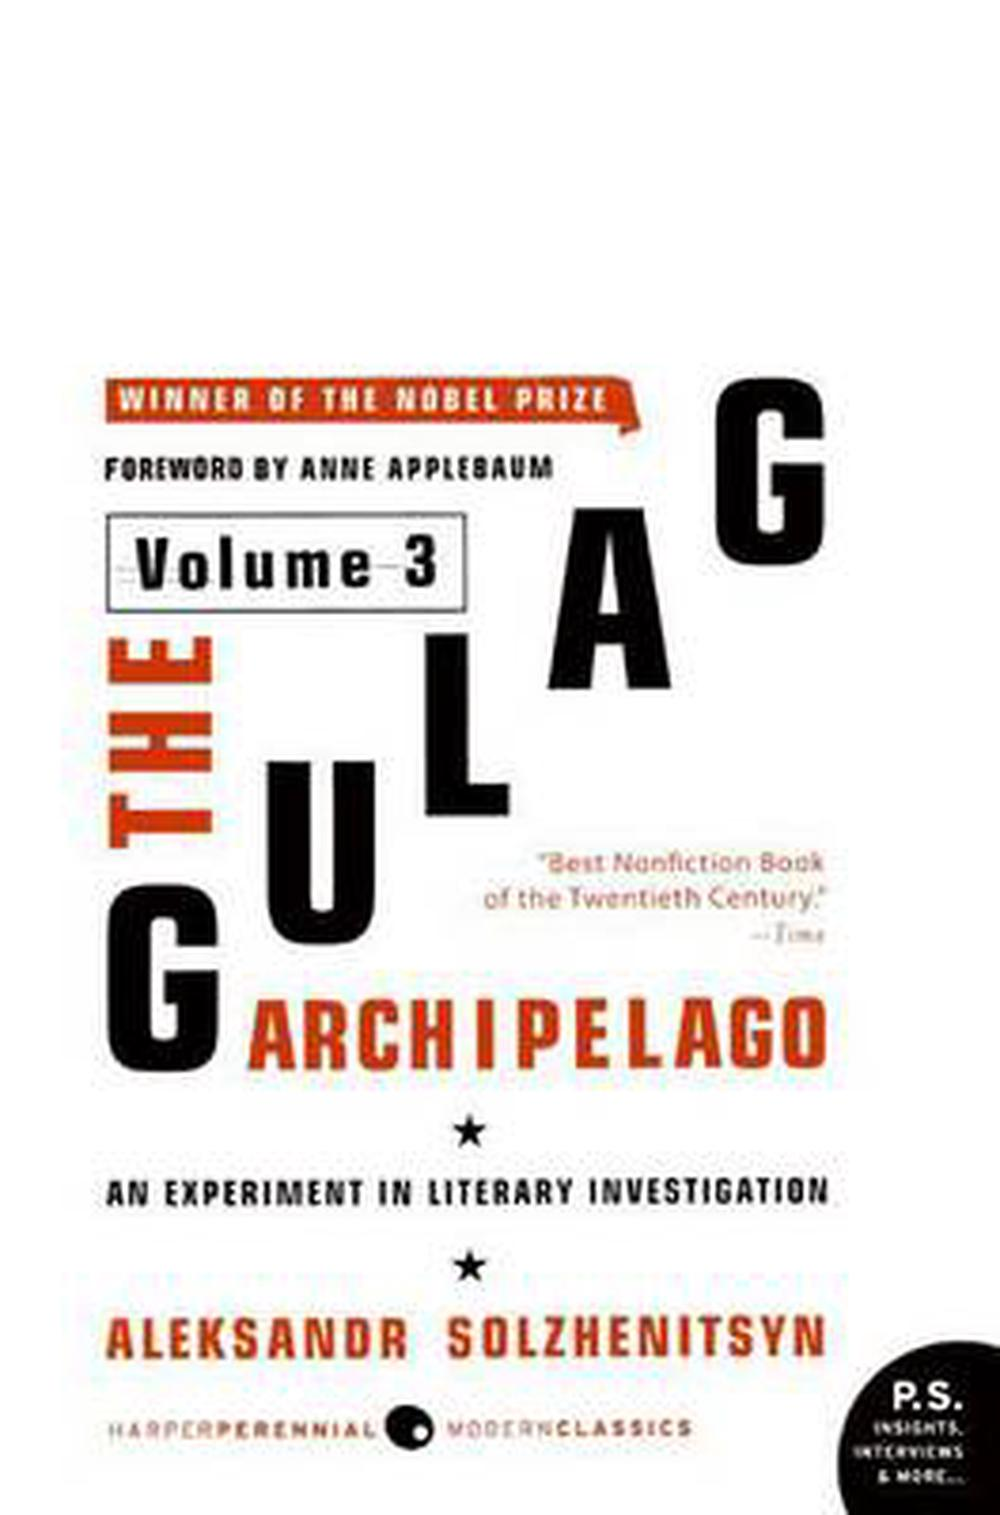 The Gulag Archipelago, 1918-1956: Volume 3: An Experiment in Literary Investigation